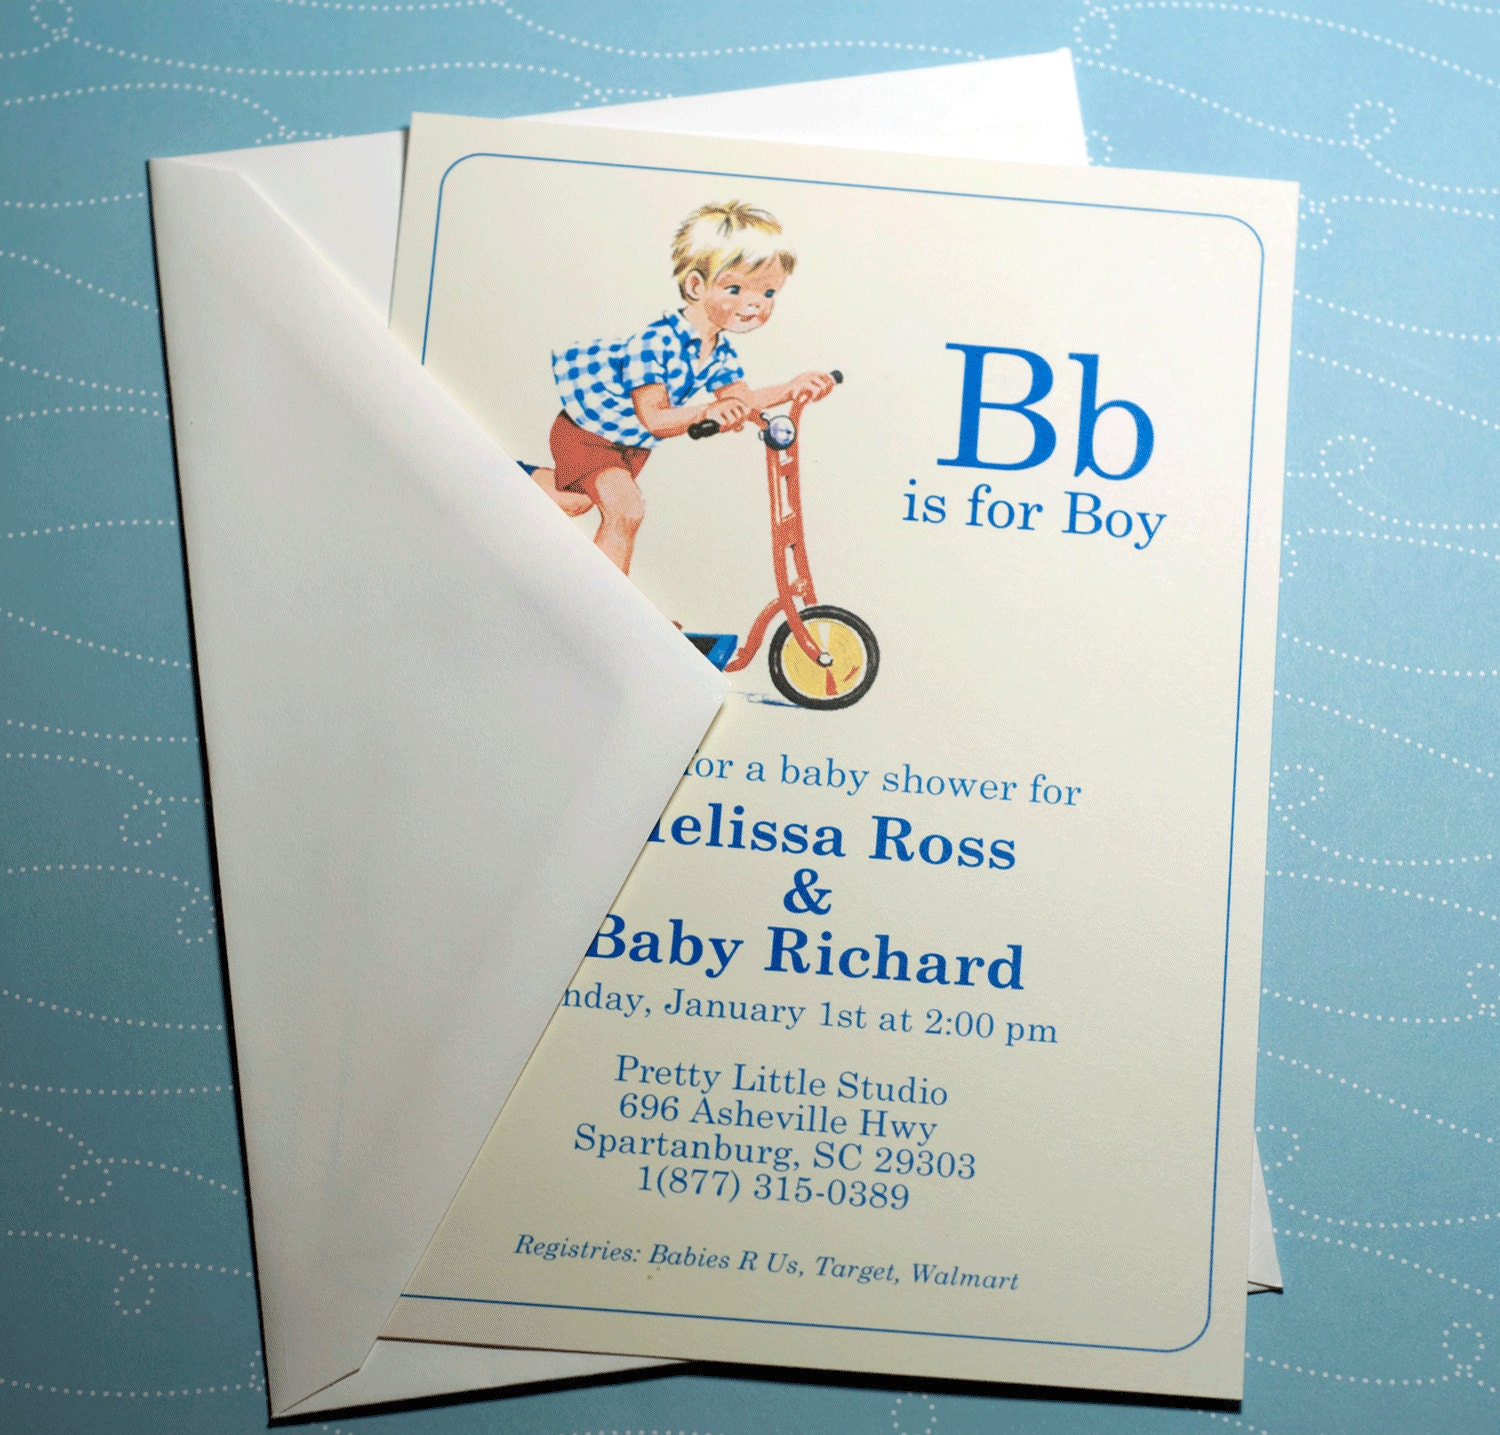 Electronic Baby Shower Invitations was very inspiring ideas you may choose for invitation ideas